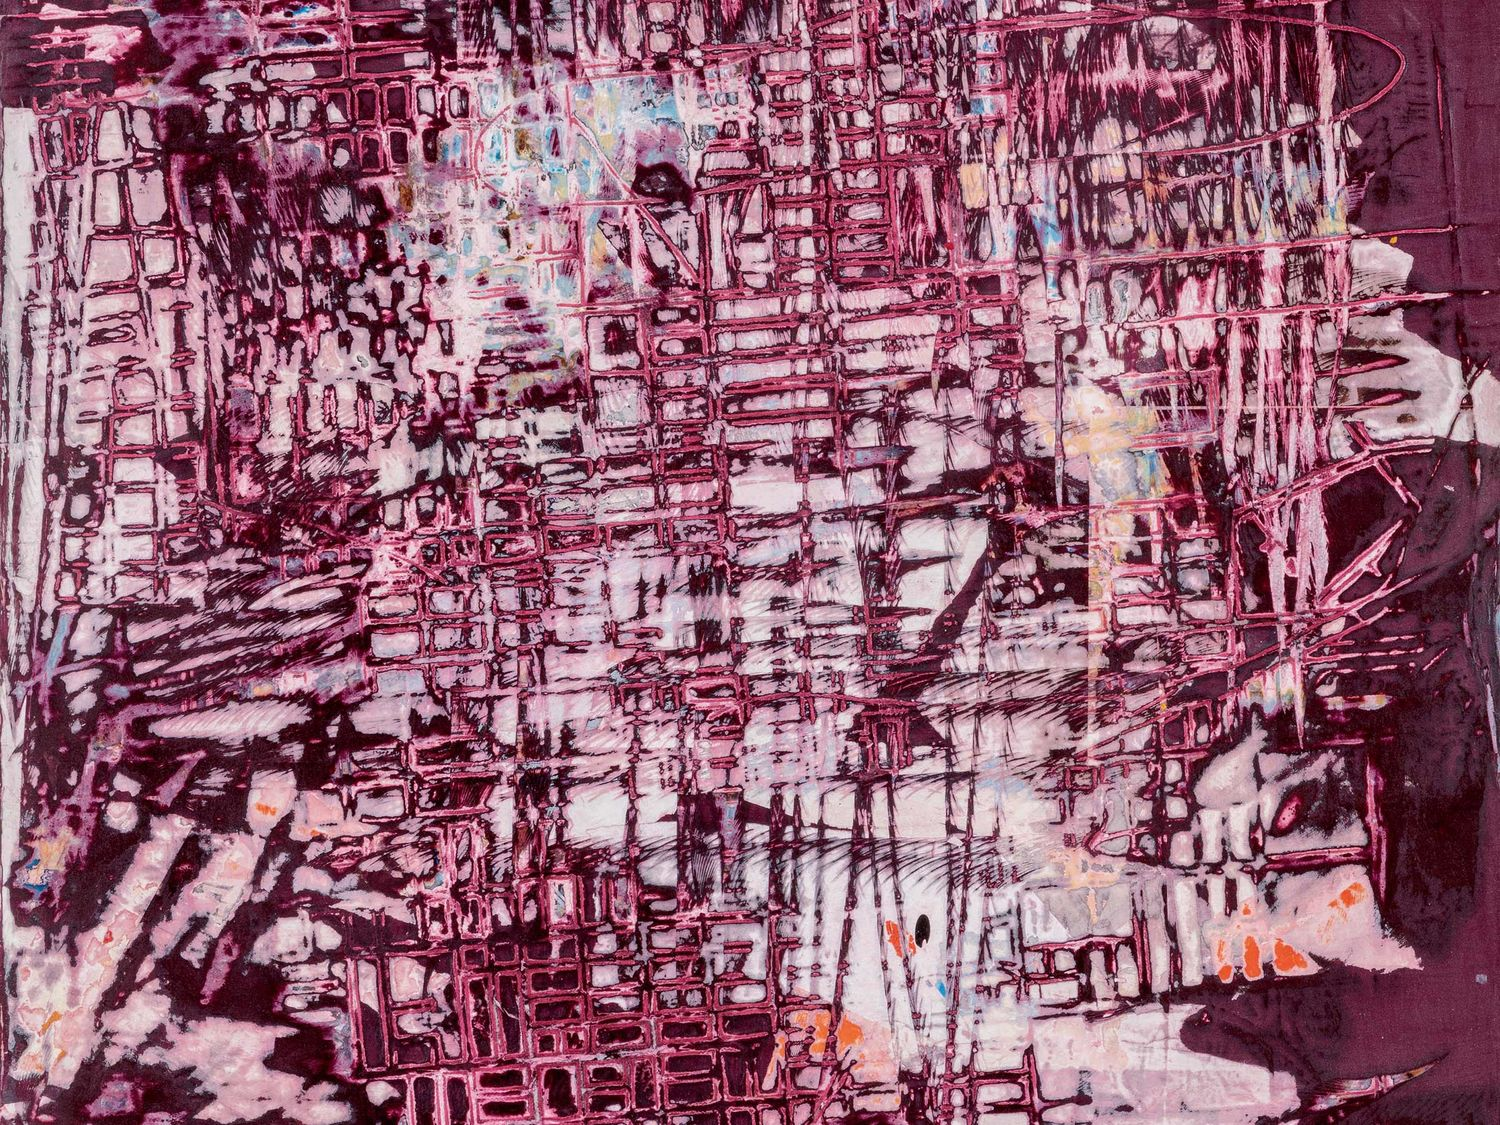 Mark Bradford, Scratch Pink, mixed media, 60 x 48 in. ©Mark Bradford. Image courtesy Sotheby's